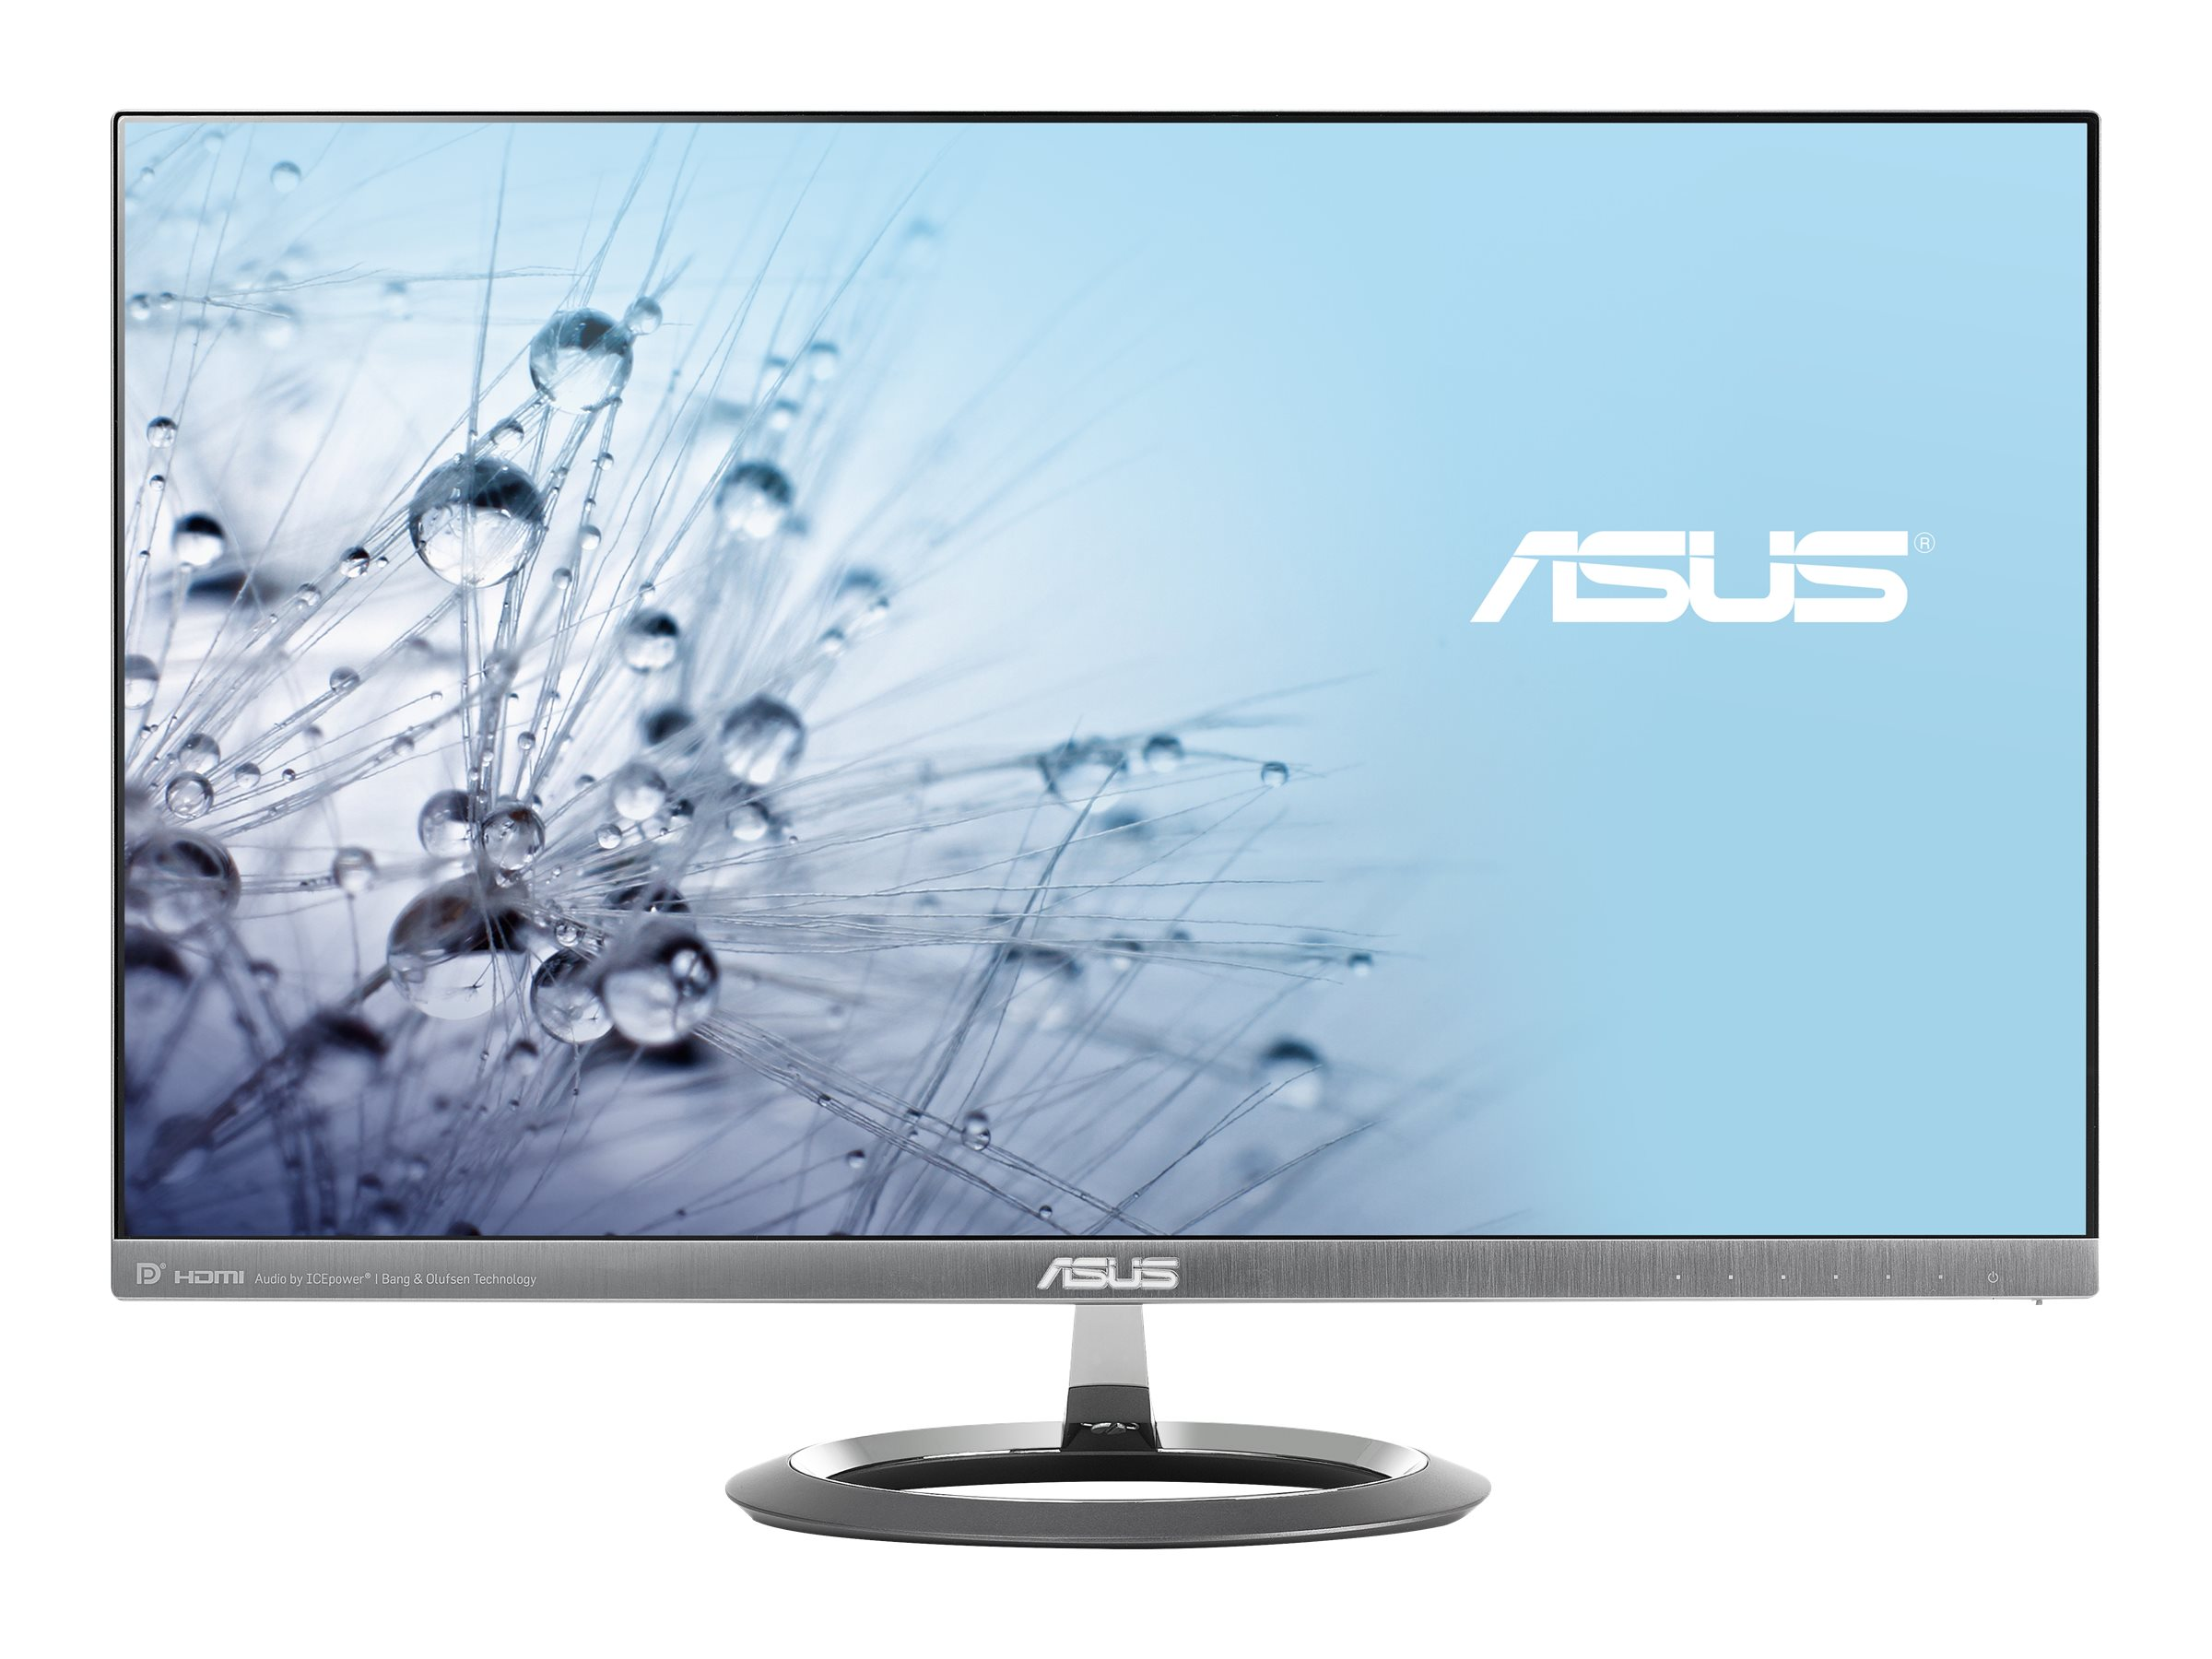 Asus 25 MX25AQ WQHD LED-LCD Monitor, Gray